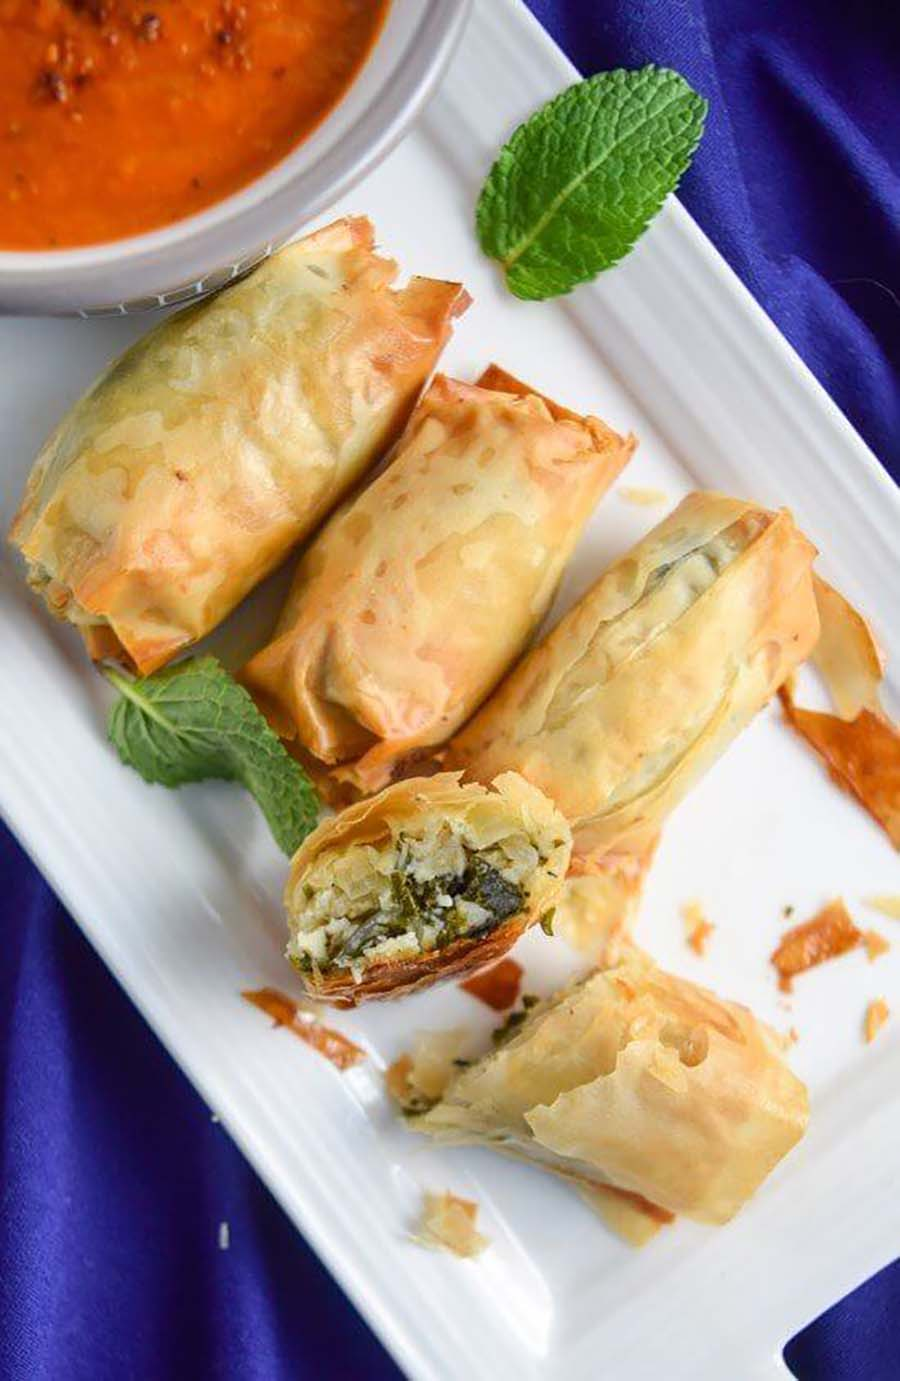 Overview of four spanakopita sitting on a white plate with a blue background.